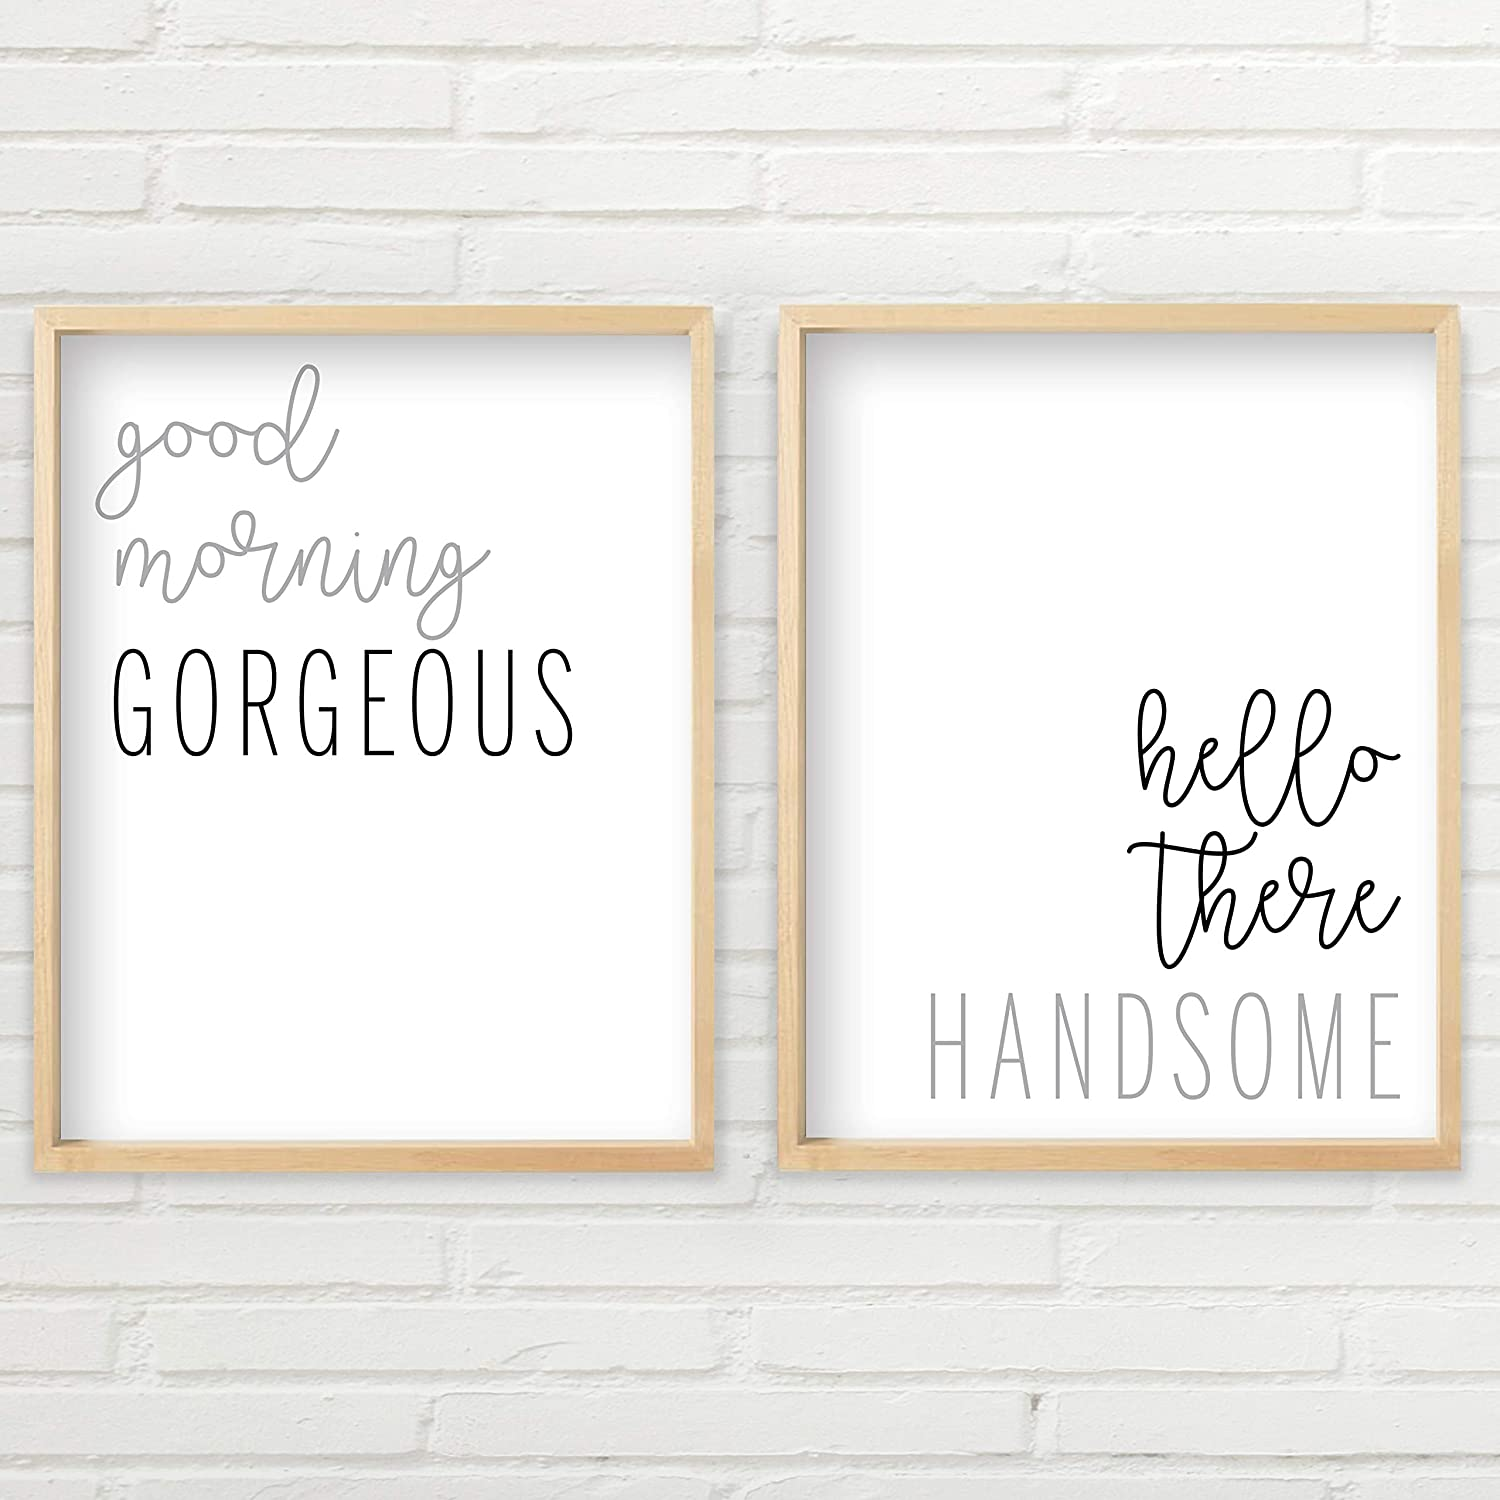 Good Morning Gorgeous Sign (2 Unframed 8x10 inch Prints, Hello Handsome Good Morning Gorgeous Wall Decor, Good Morning Gorgeous Sign Wall Art Set, Typography Art, Minimalist Wall Art)